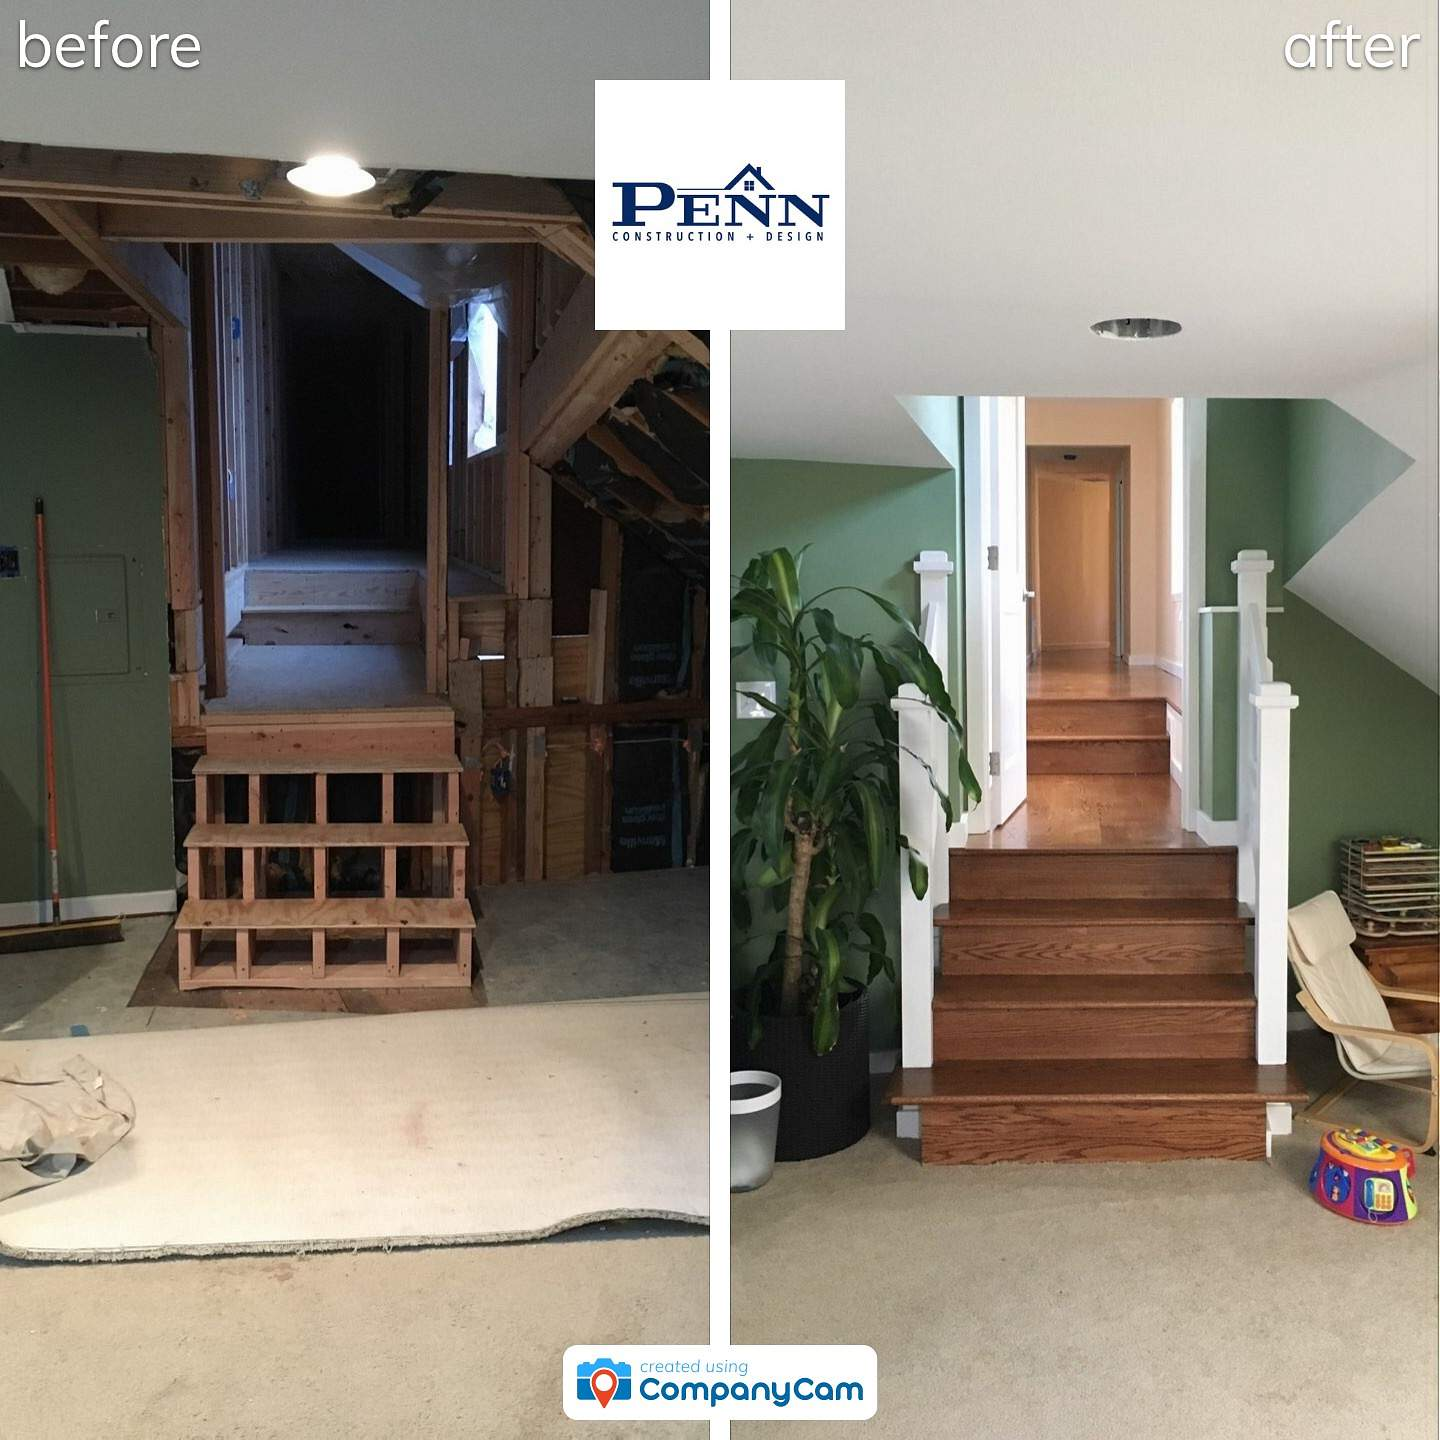 Before After Renovations Penn Construction Design